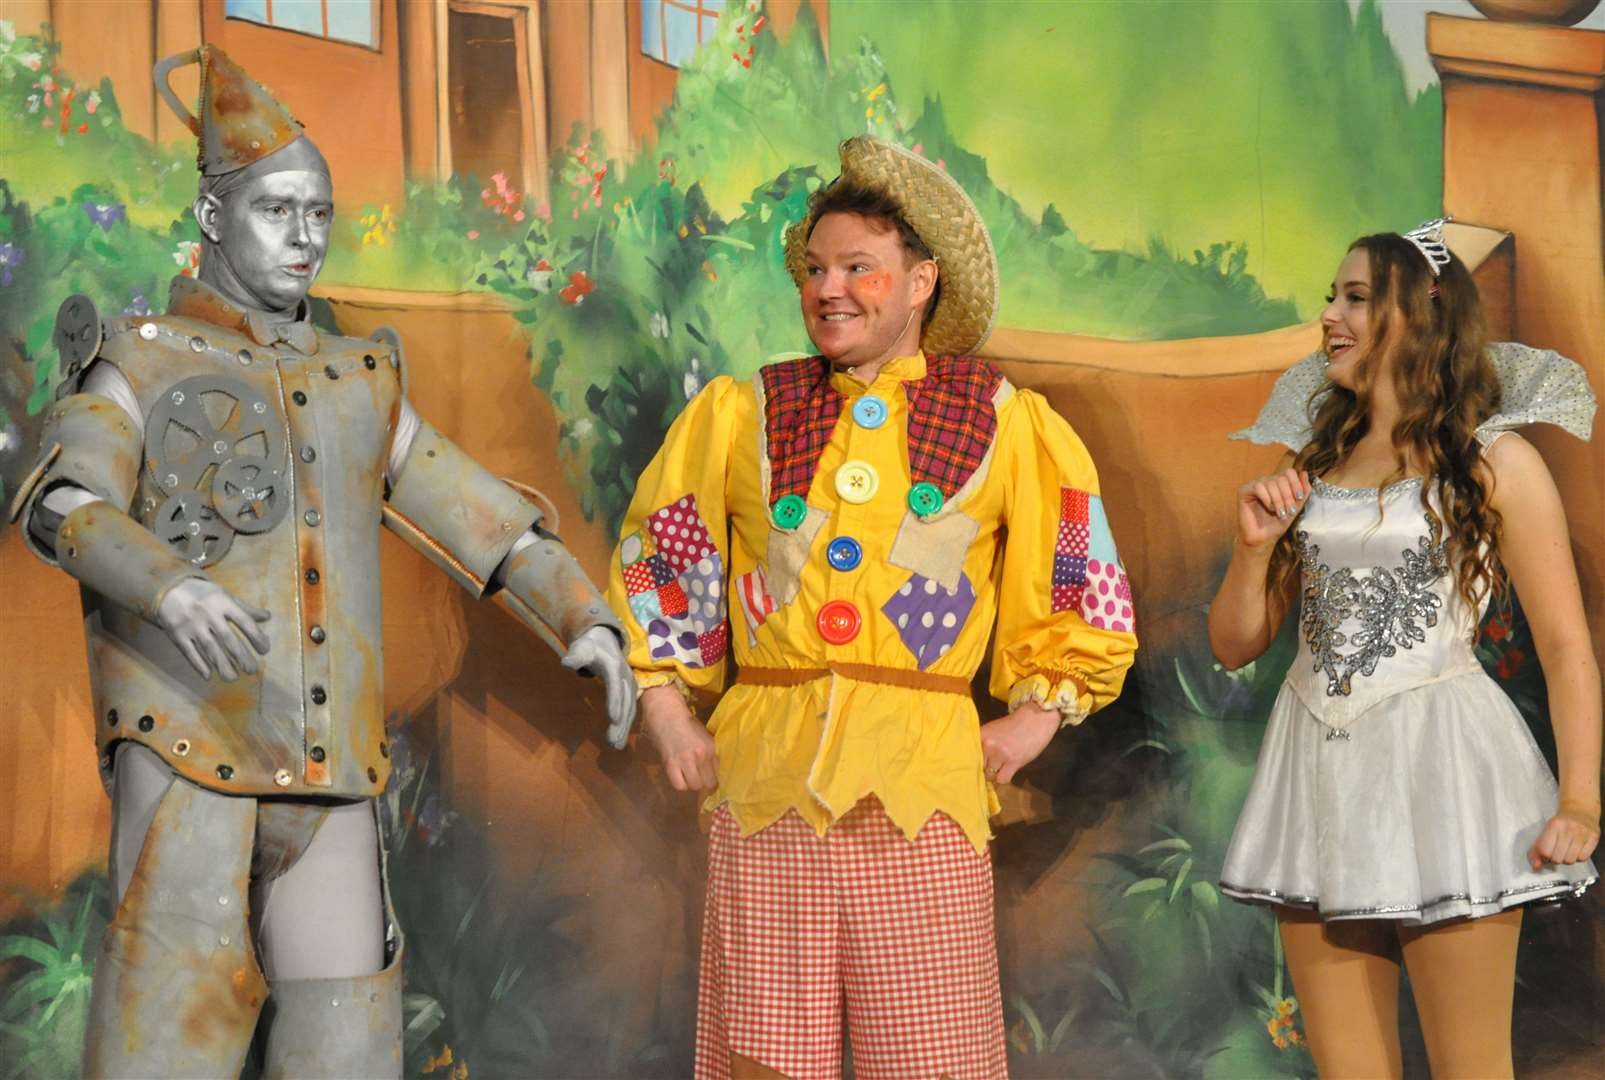 Tin Man, Scarecrow and Glinda the Good Fairy from the Wizard of Oz. Picture: Trio Entertainment